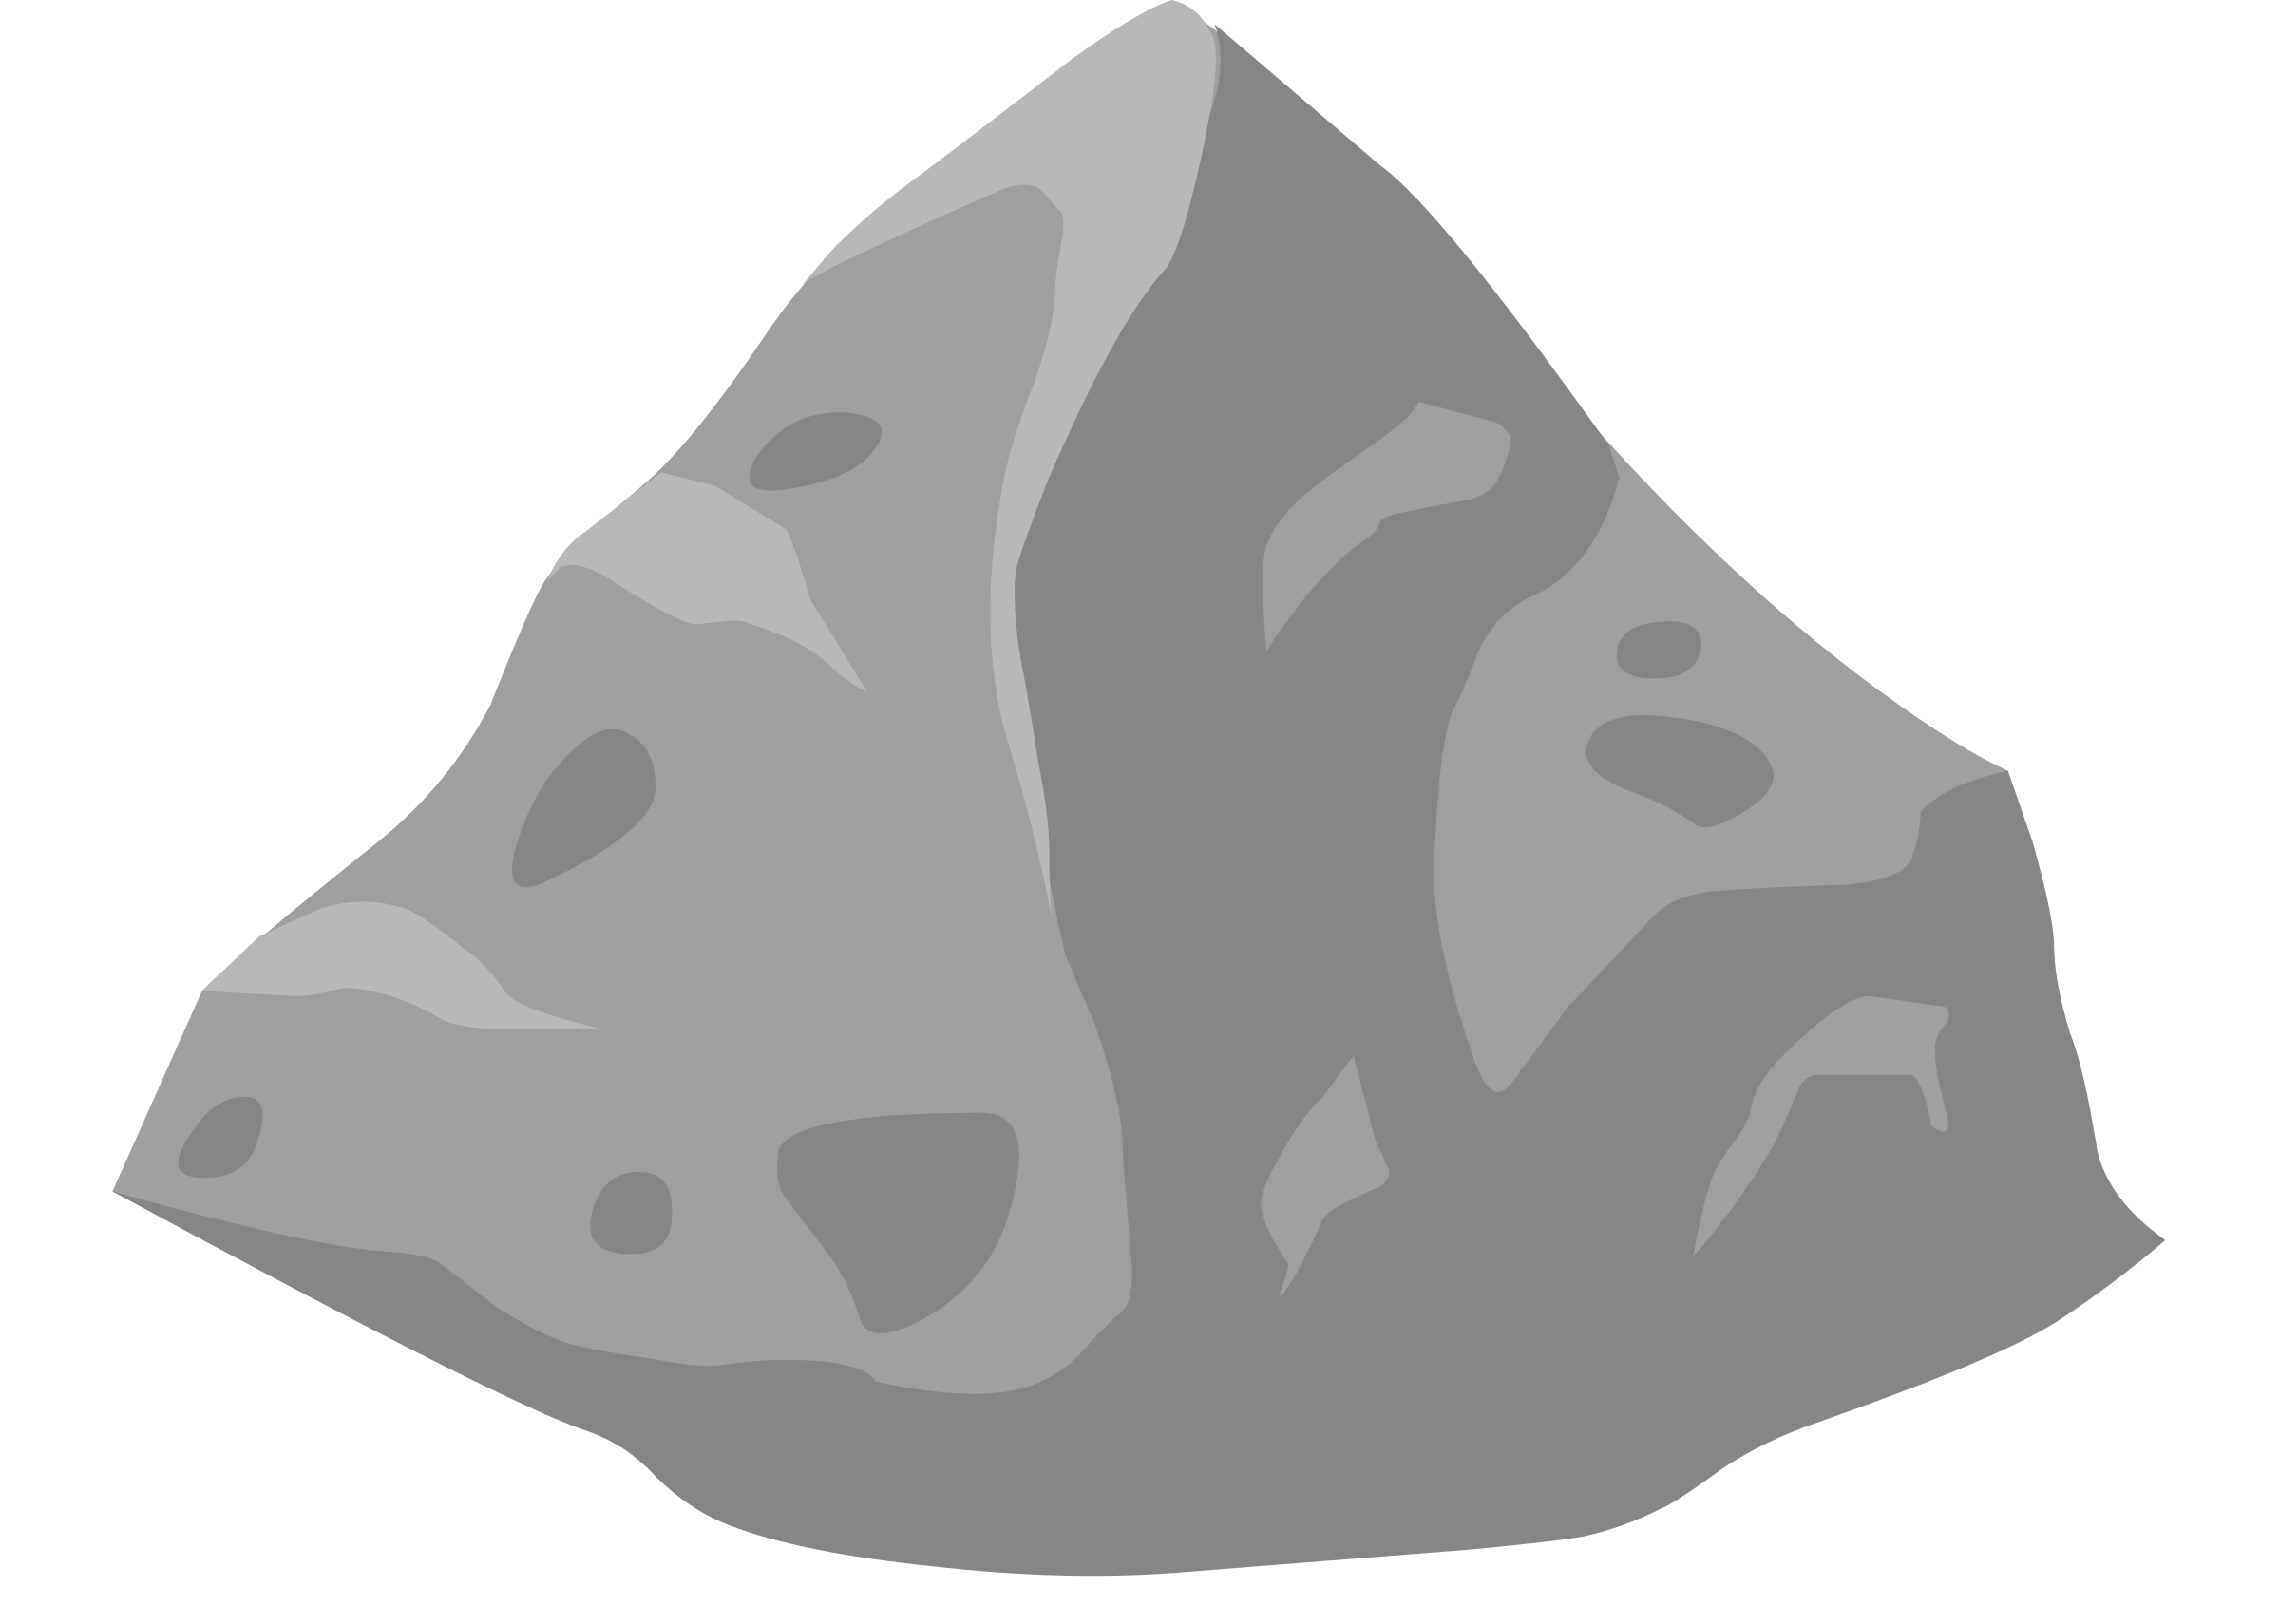 png royalty free stock Glitch big rock free. Boulder clipart resources